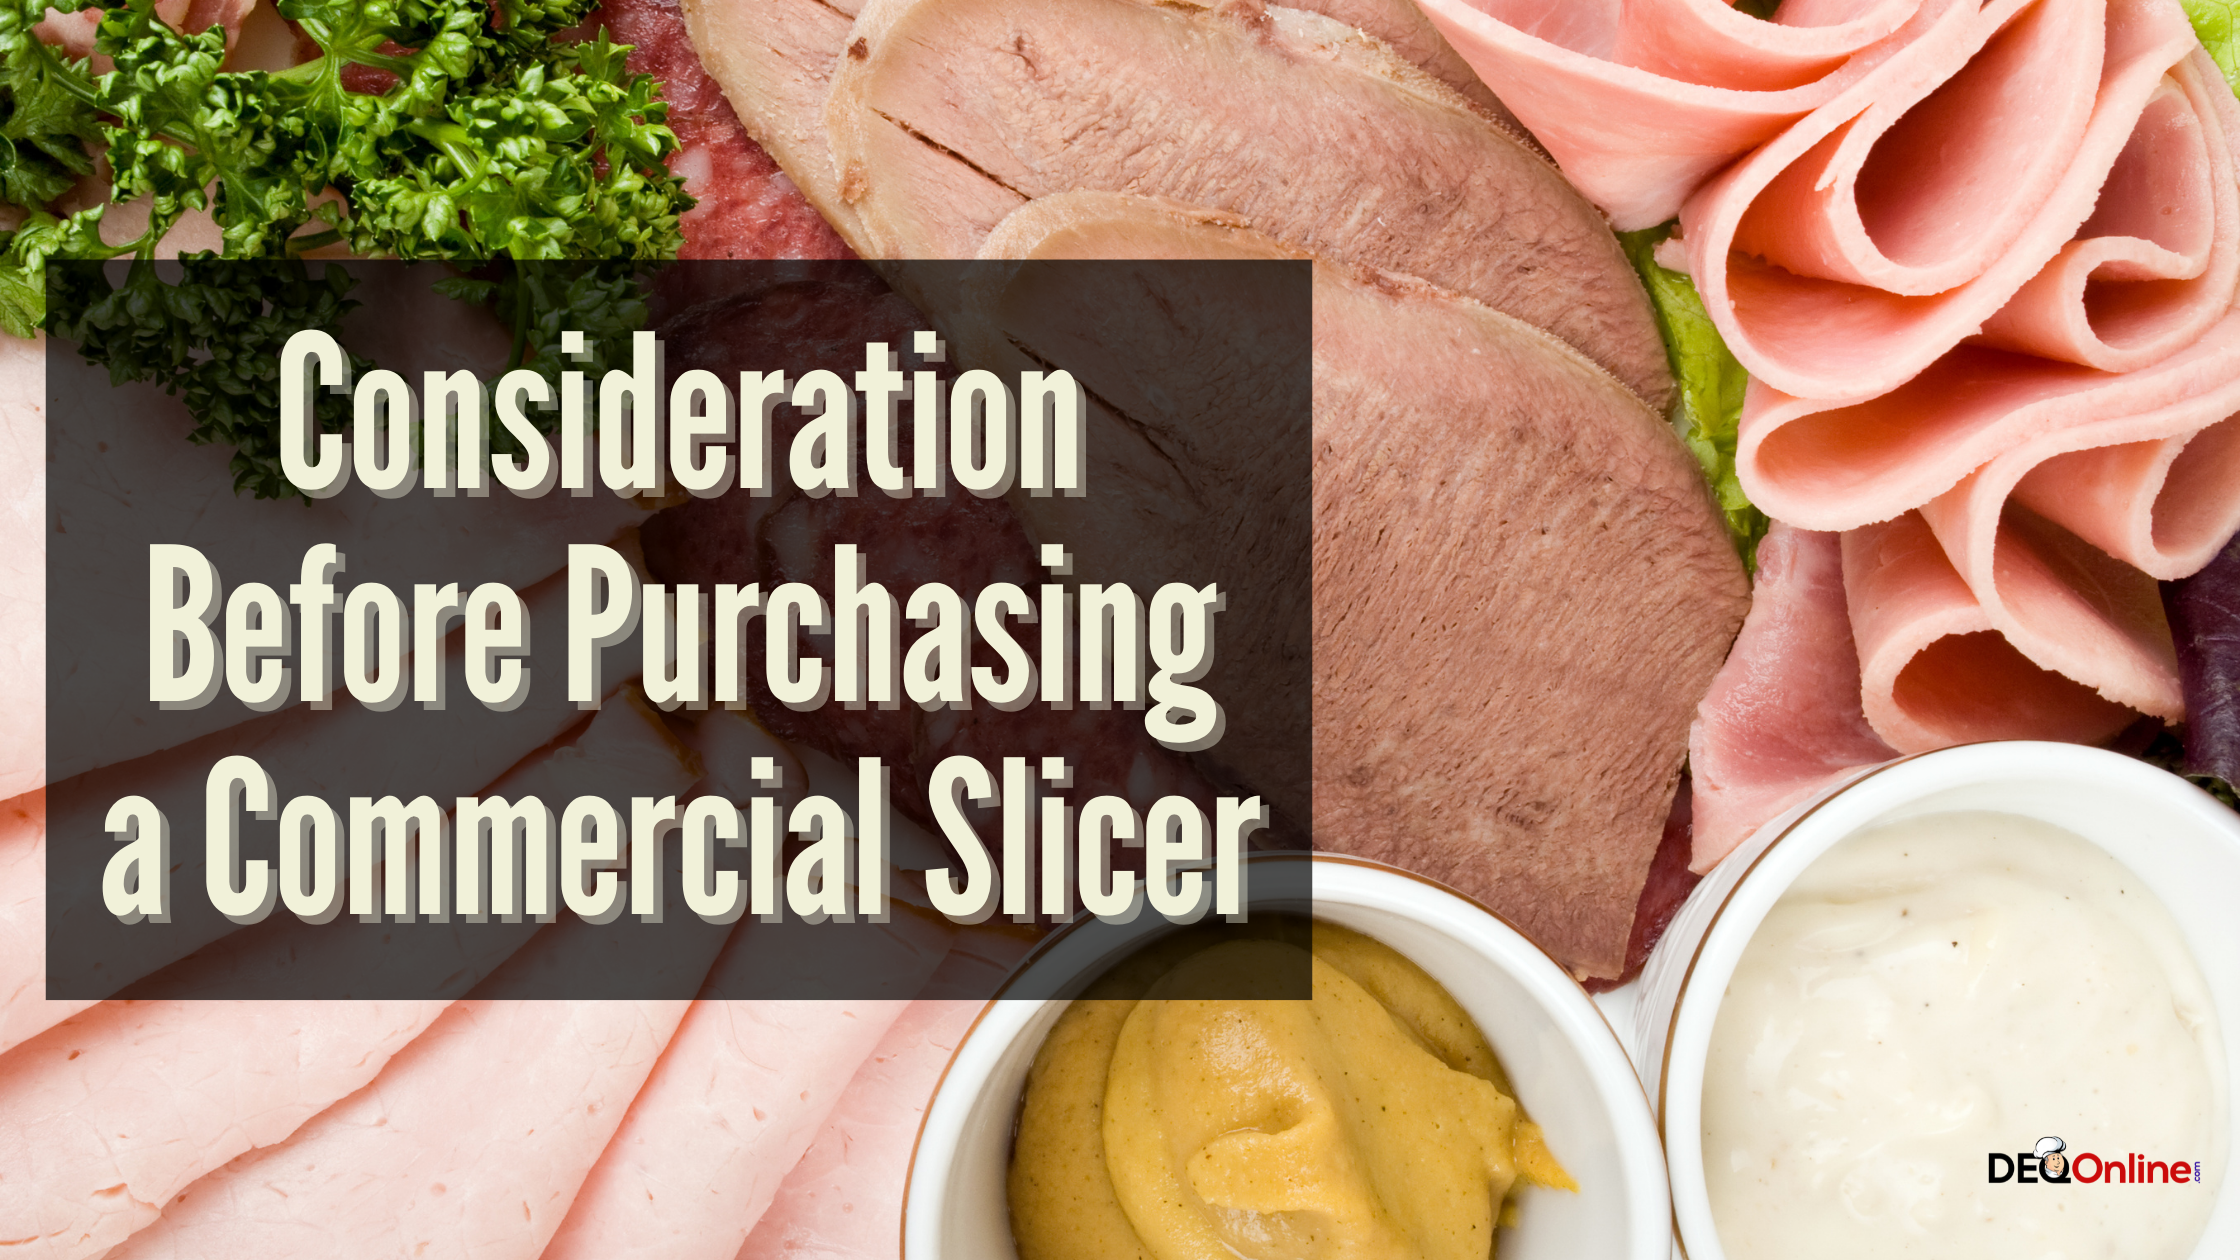 Consideration Before Purchasing a Commercial Slicer